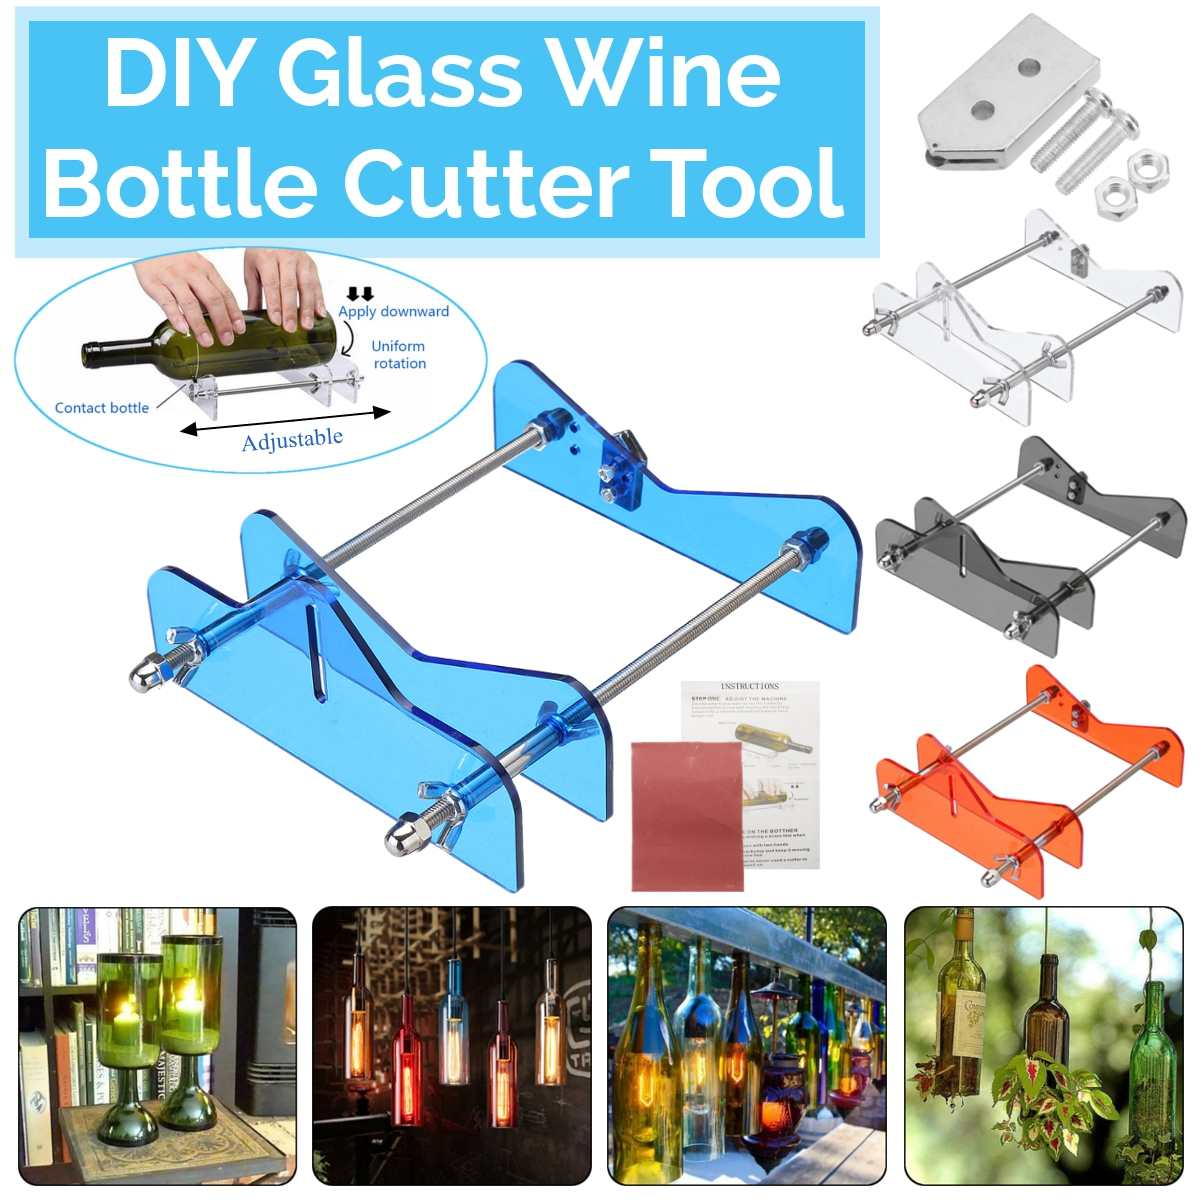 4 Color Glass Bottle Cutter Tool DIY Glass Wine Bottle Cutter Cutting Machine Kit & Replacement Kit Craft Party Recycle Tool